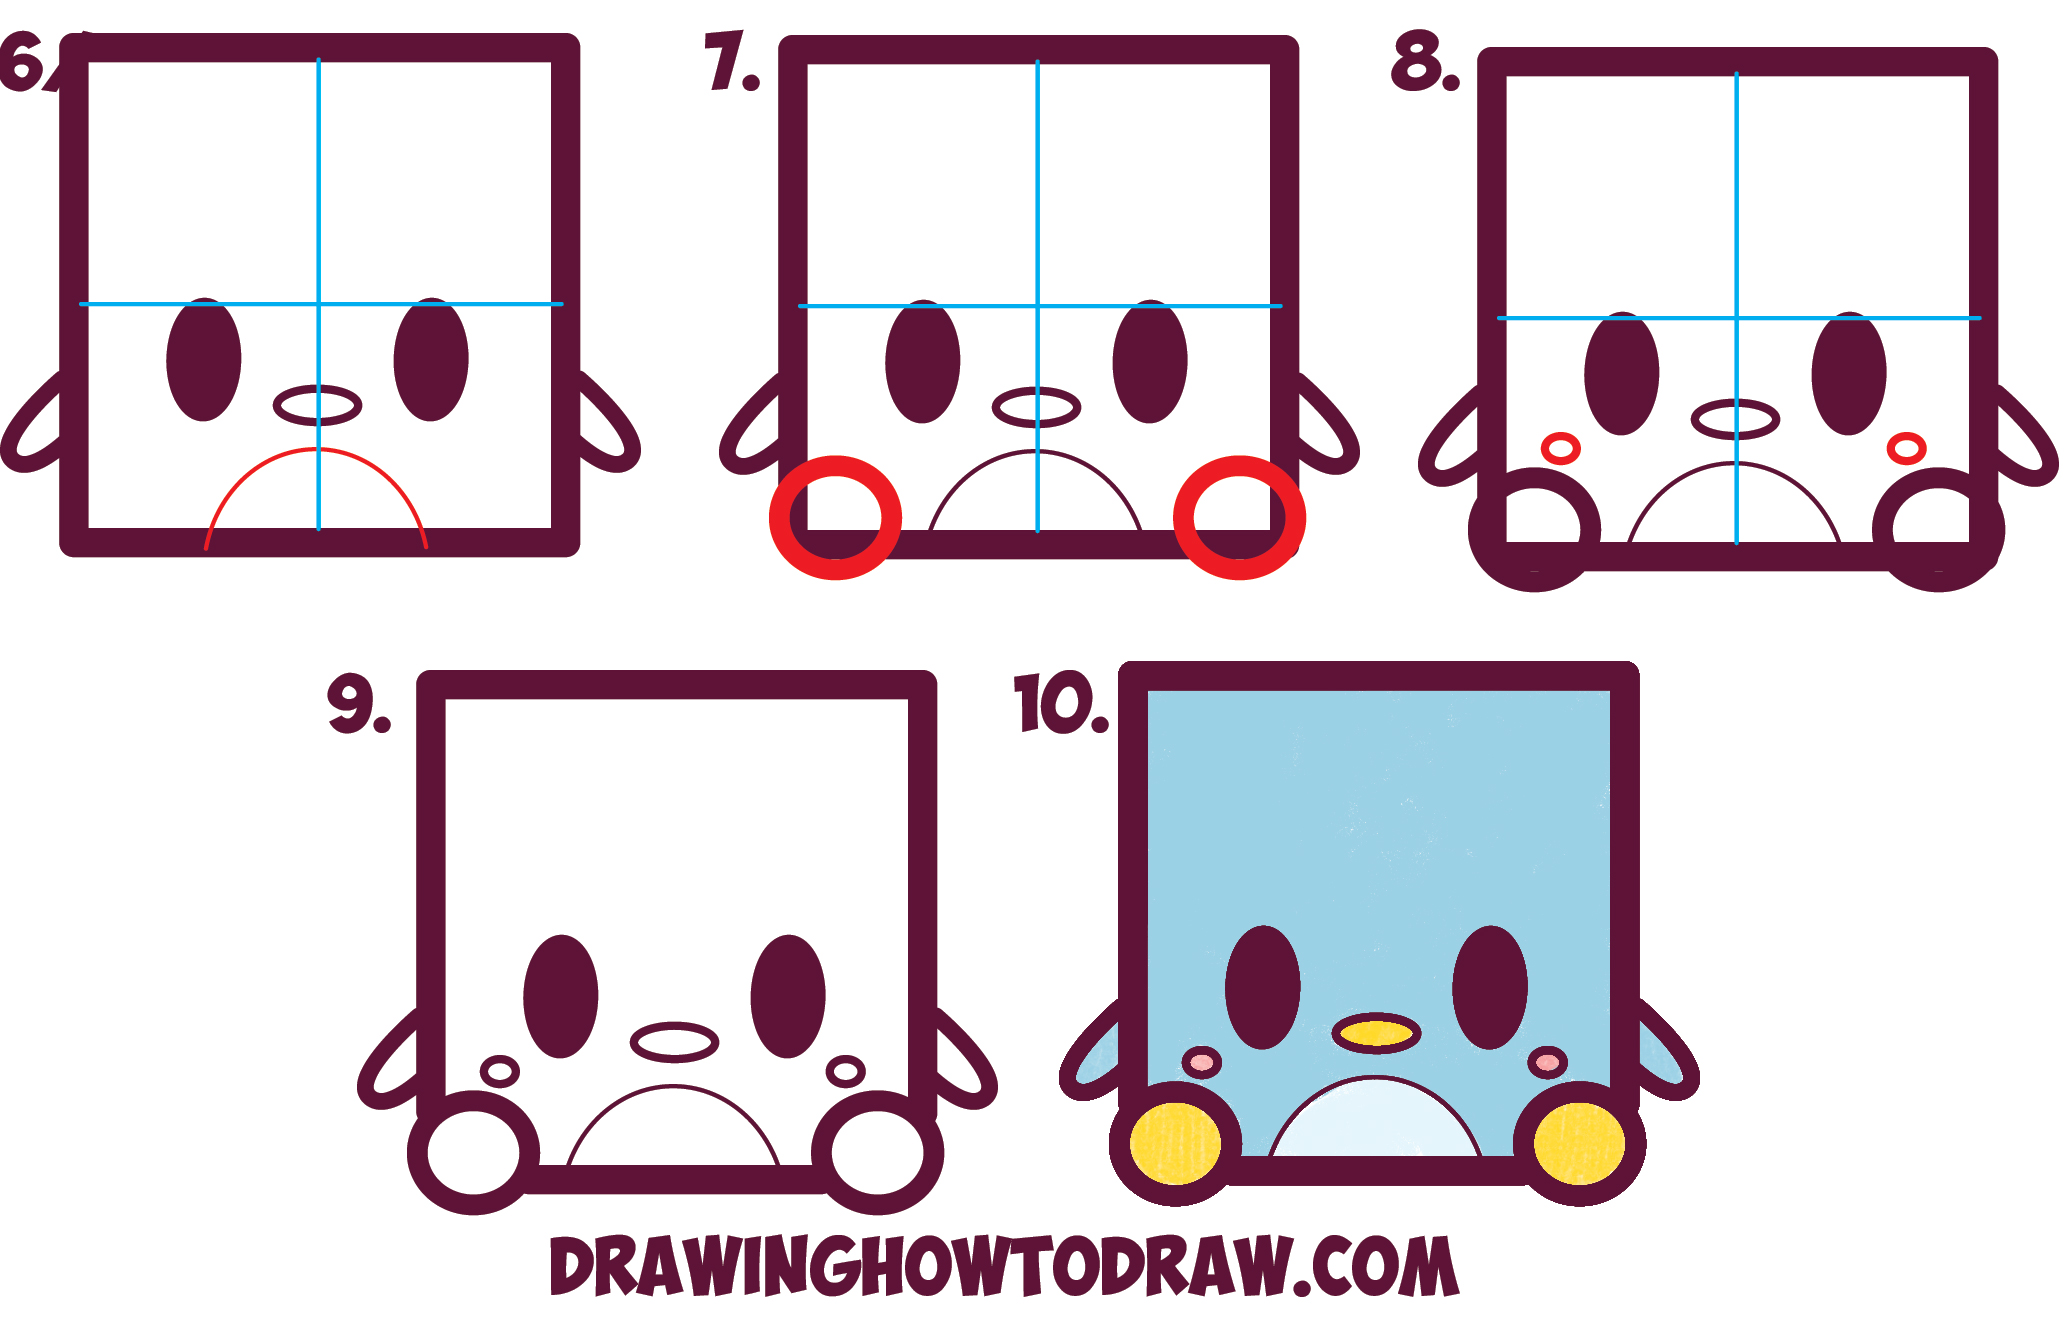 Learn How to Draw Cute / Kawaii Penguins from Square Shape with Simple Steps Drawing Lesson for Kids and Beginners